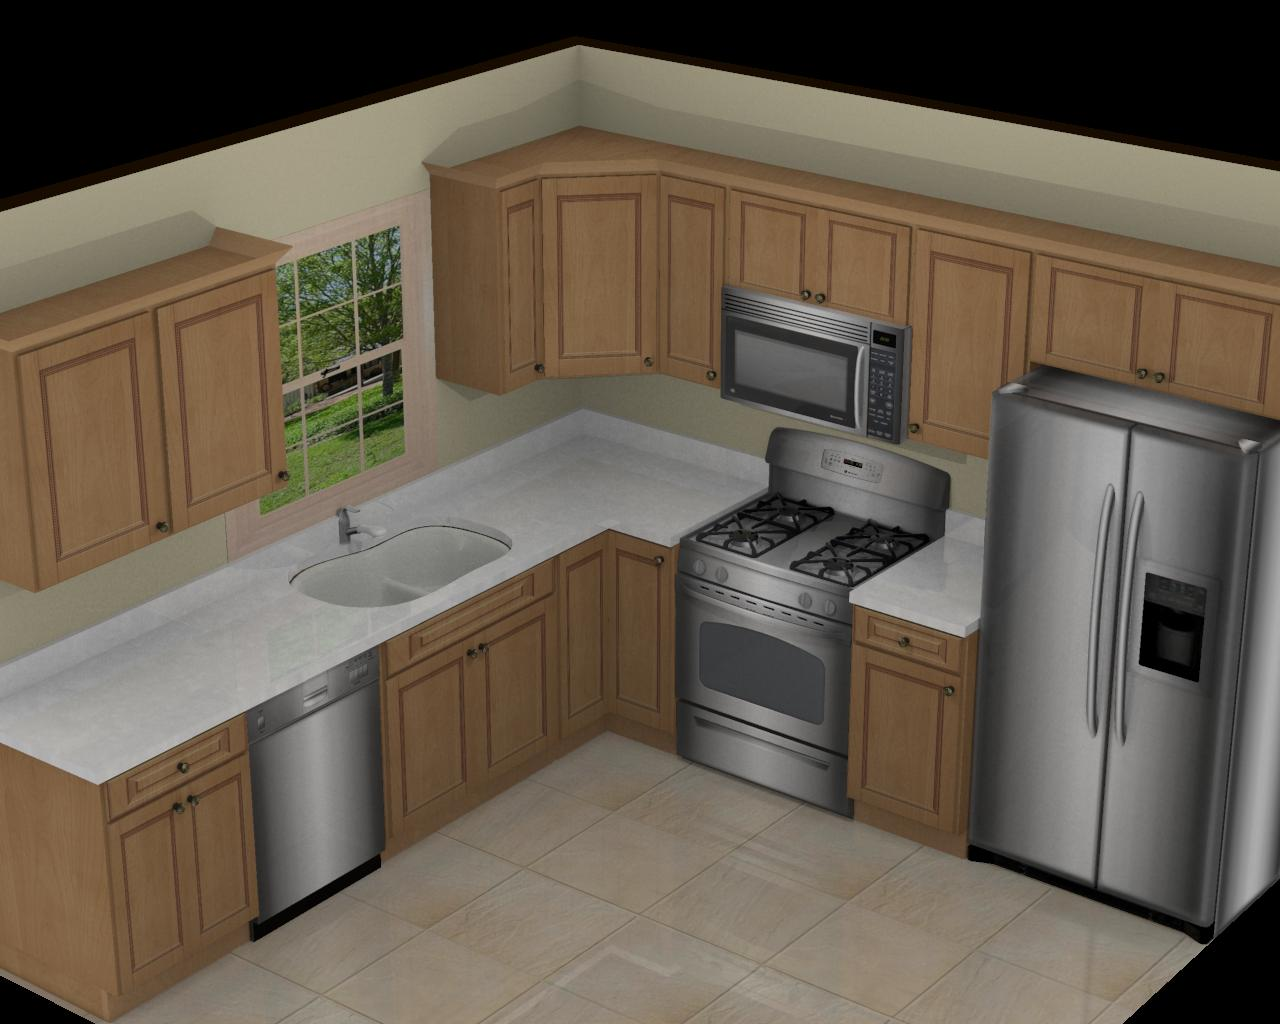 Kitchen Design 3d Model Foundation Dezin Decor 3d Kitchen Model Design